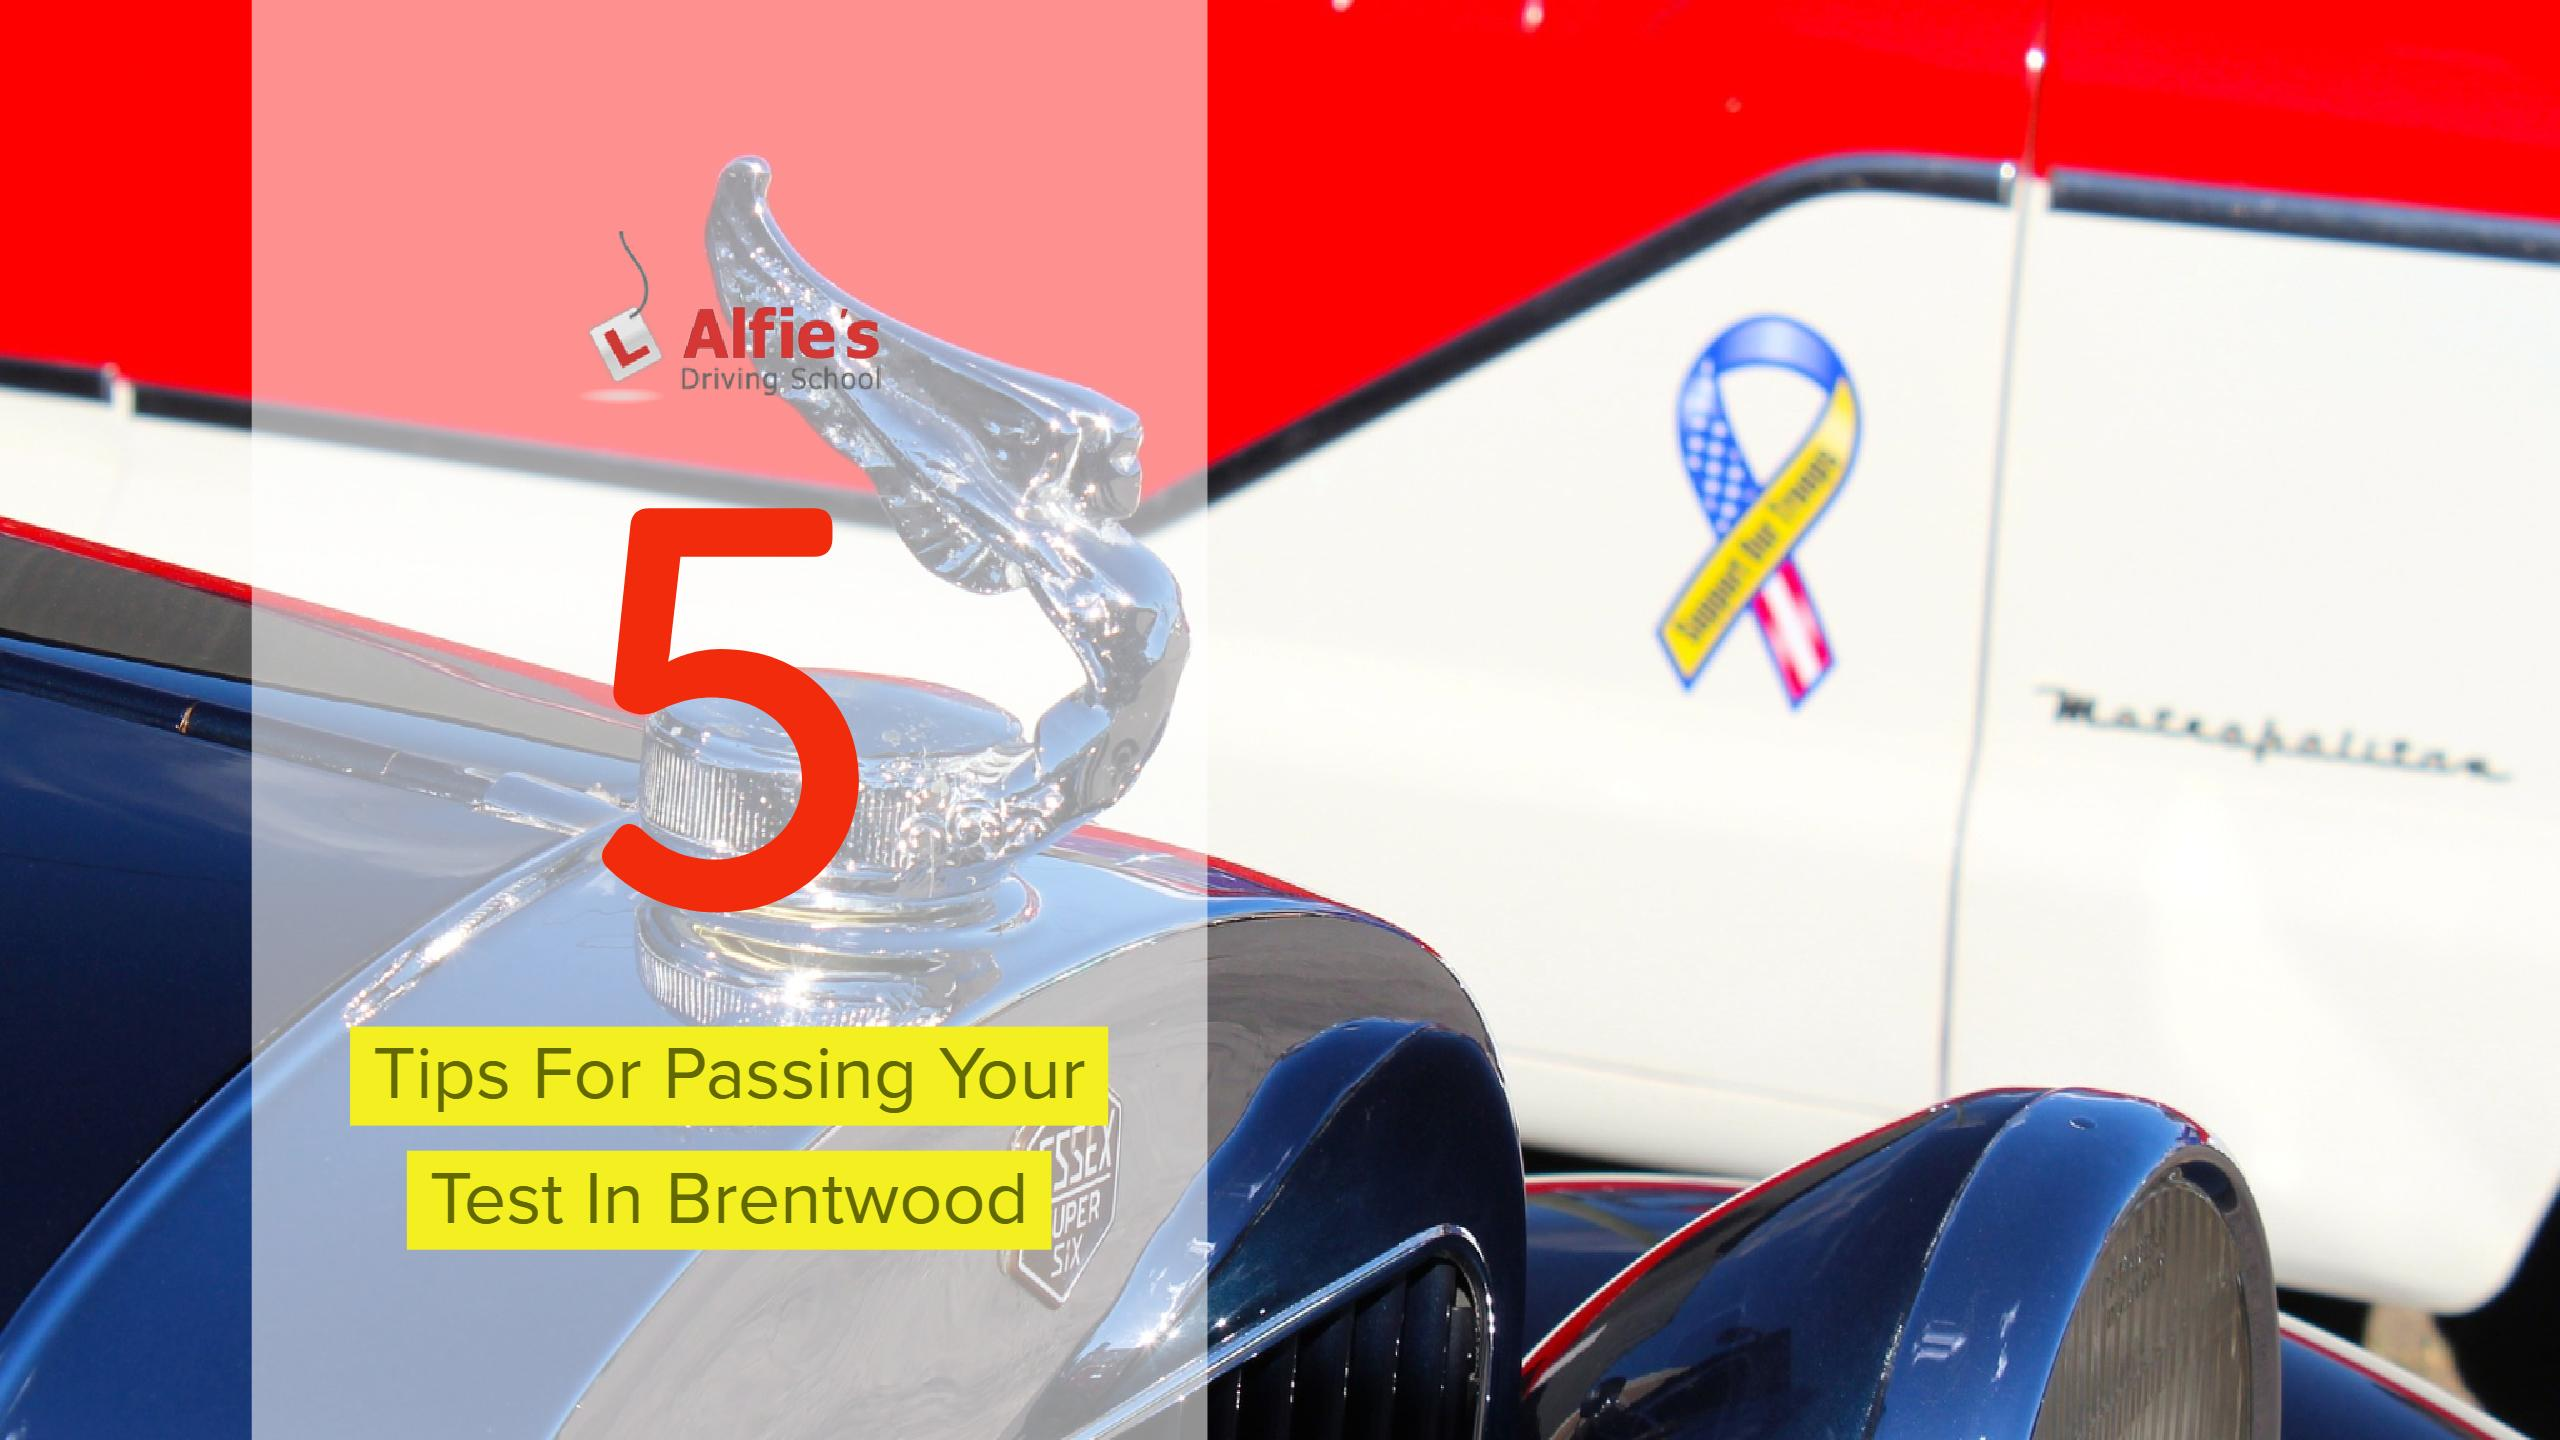 5 Tips For Passing Your Test In Brentwood 1